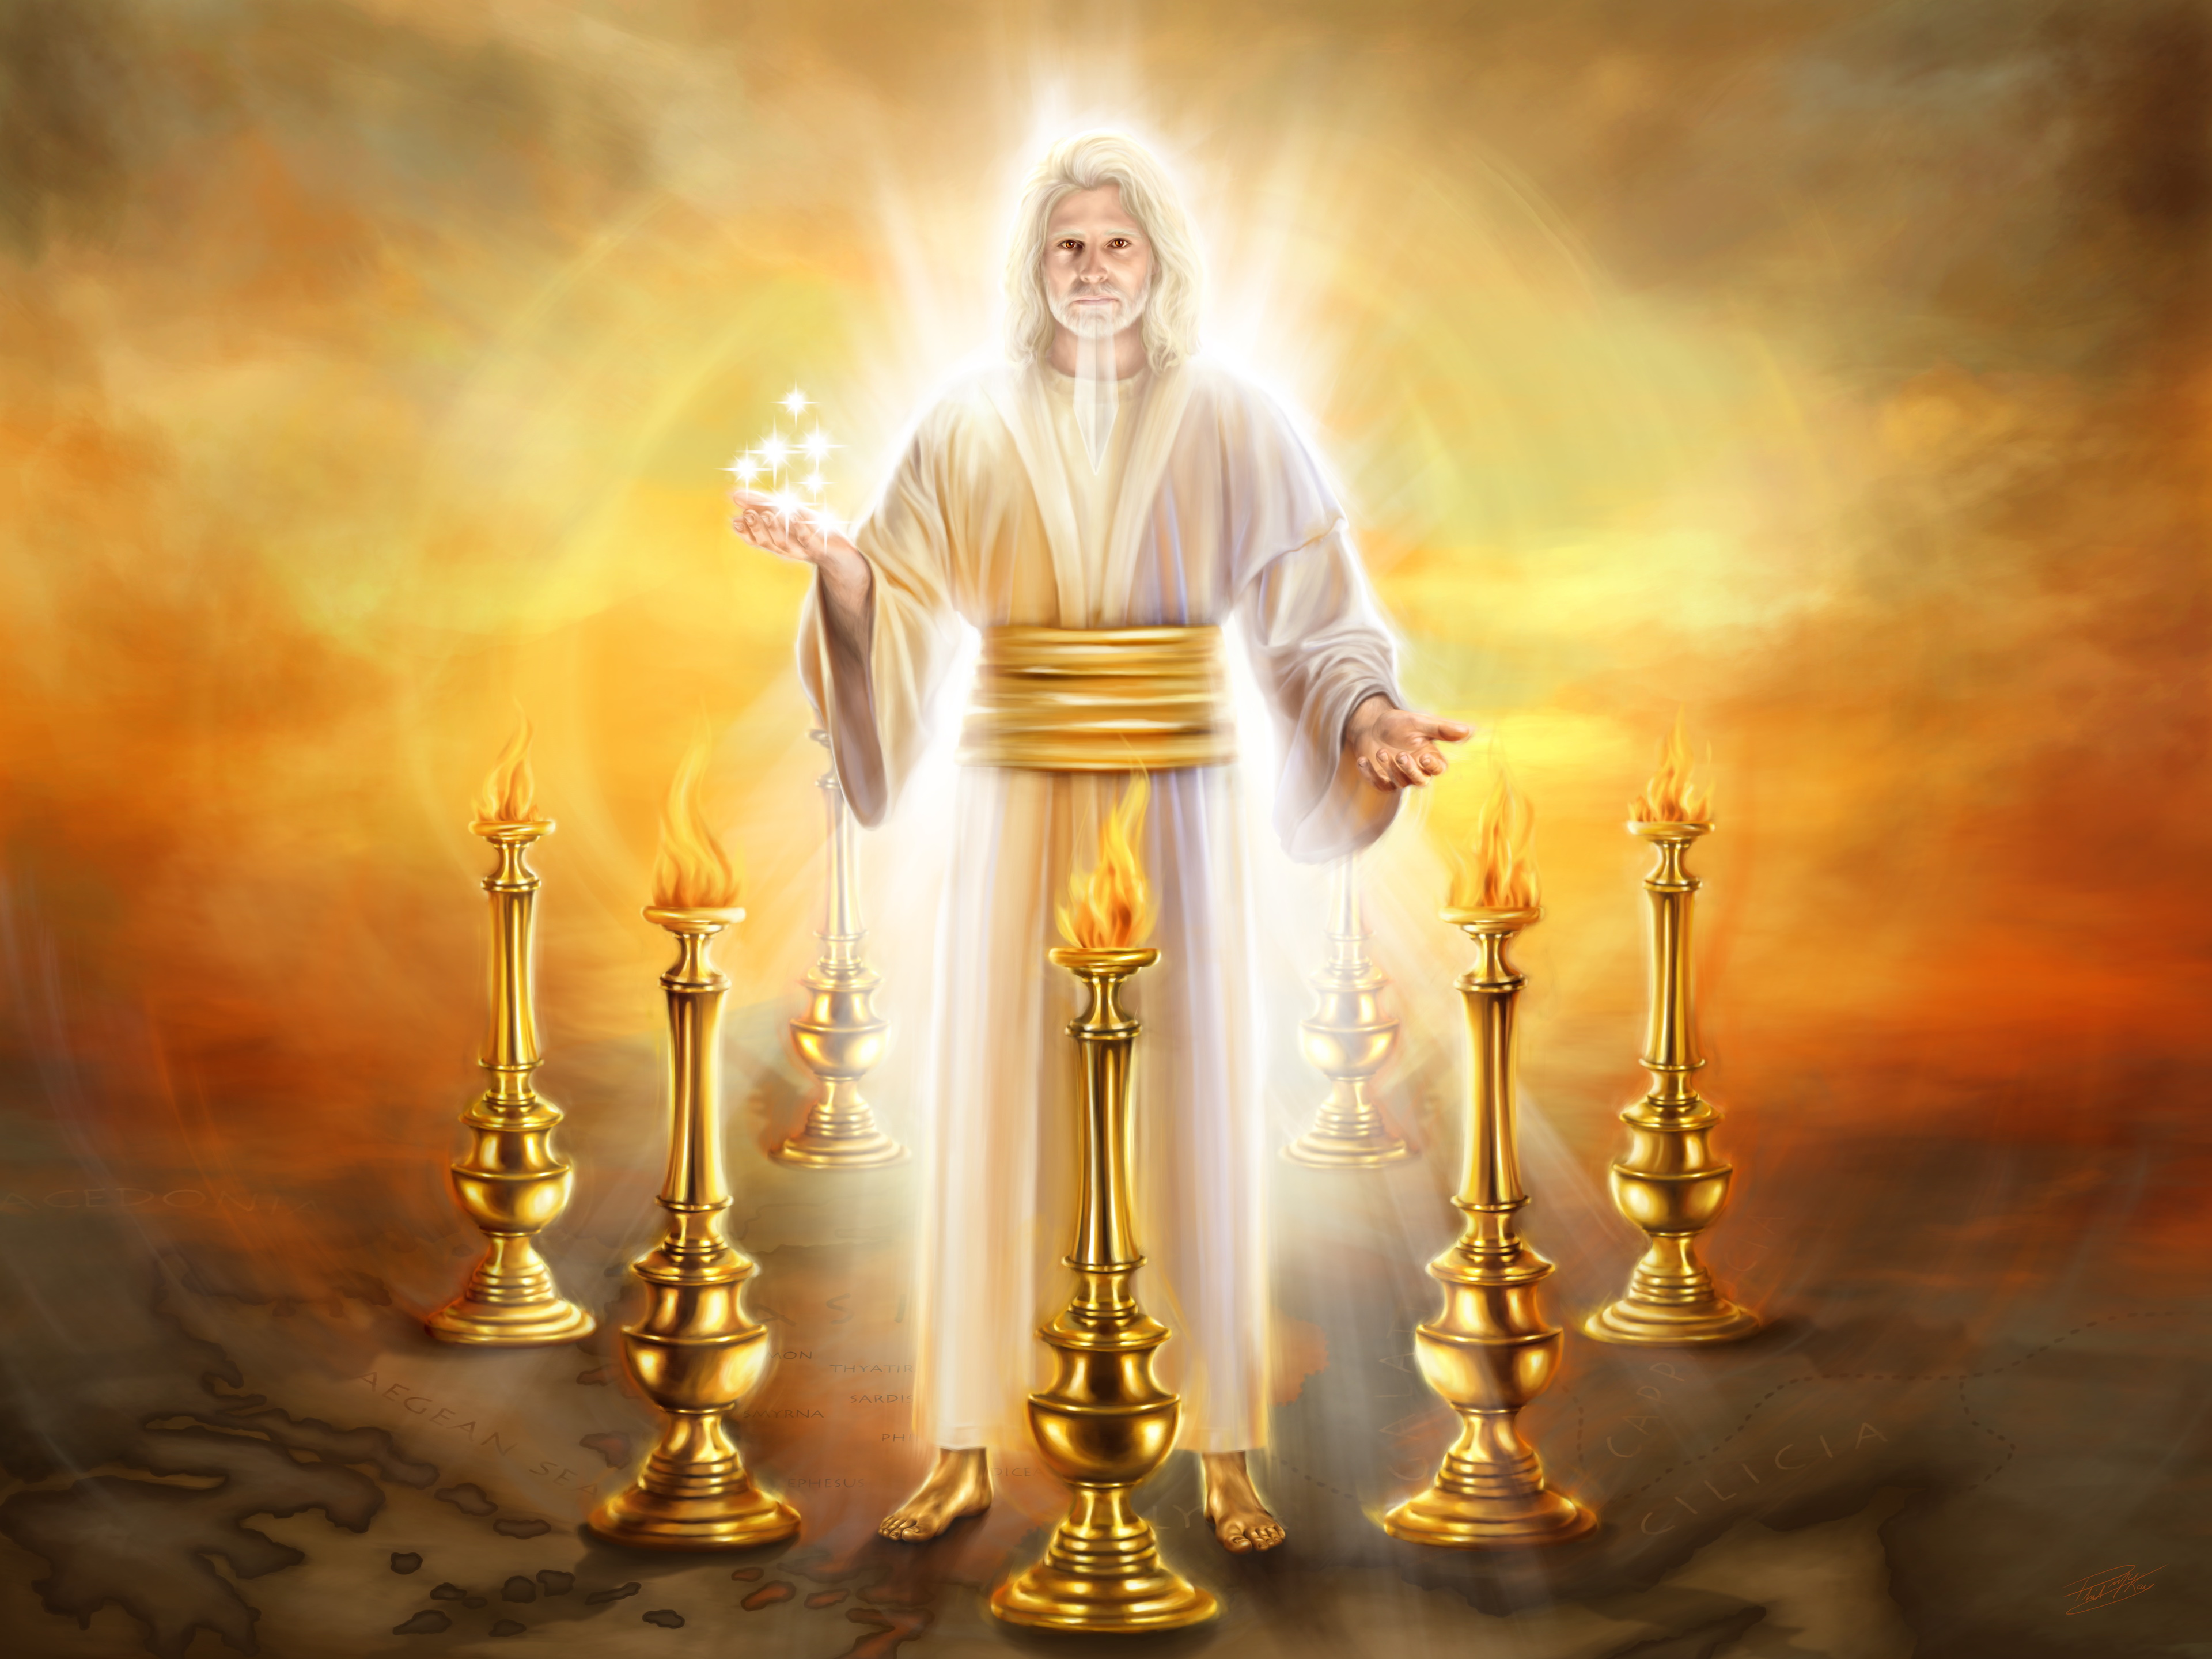 The Seven Golden Lampstands - A Solemn Warning for All Churches -  Fulfilling the Promises